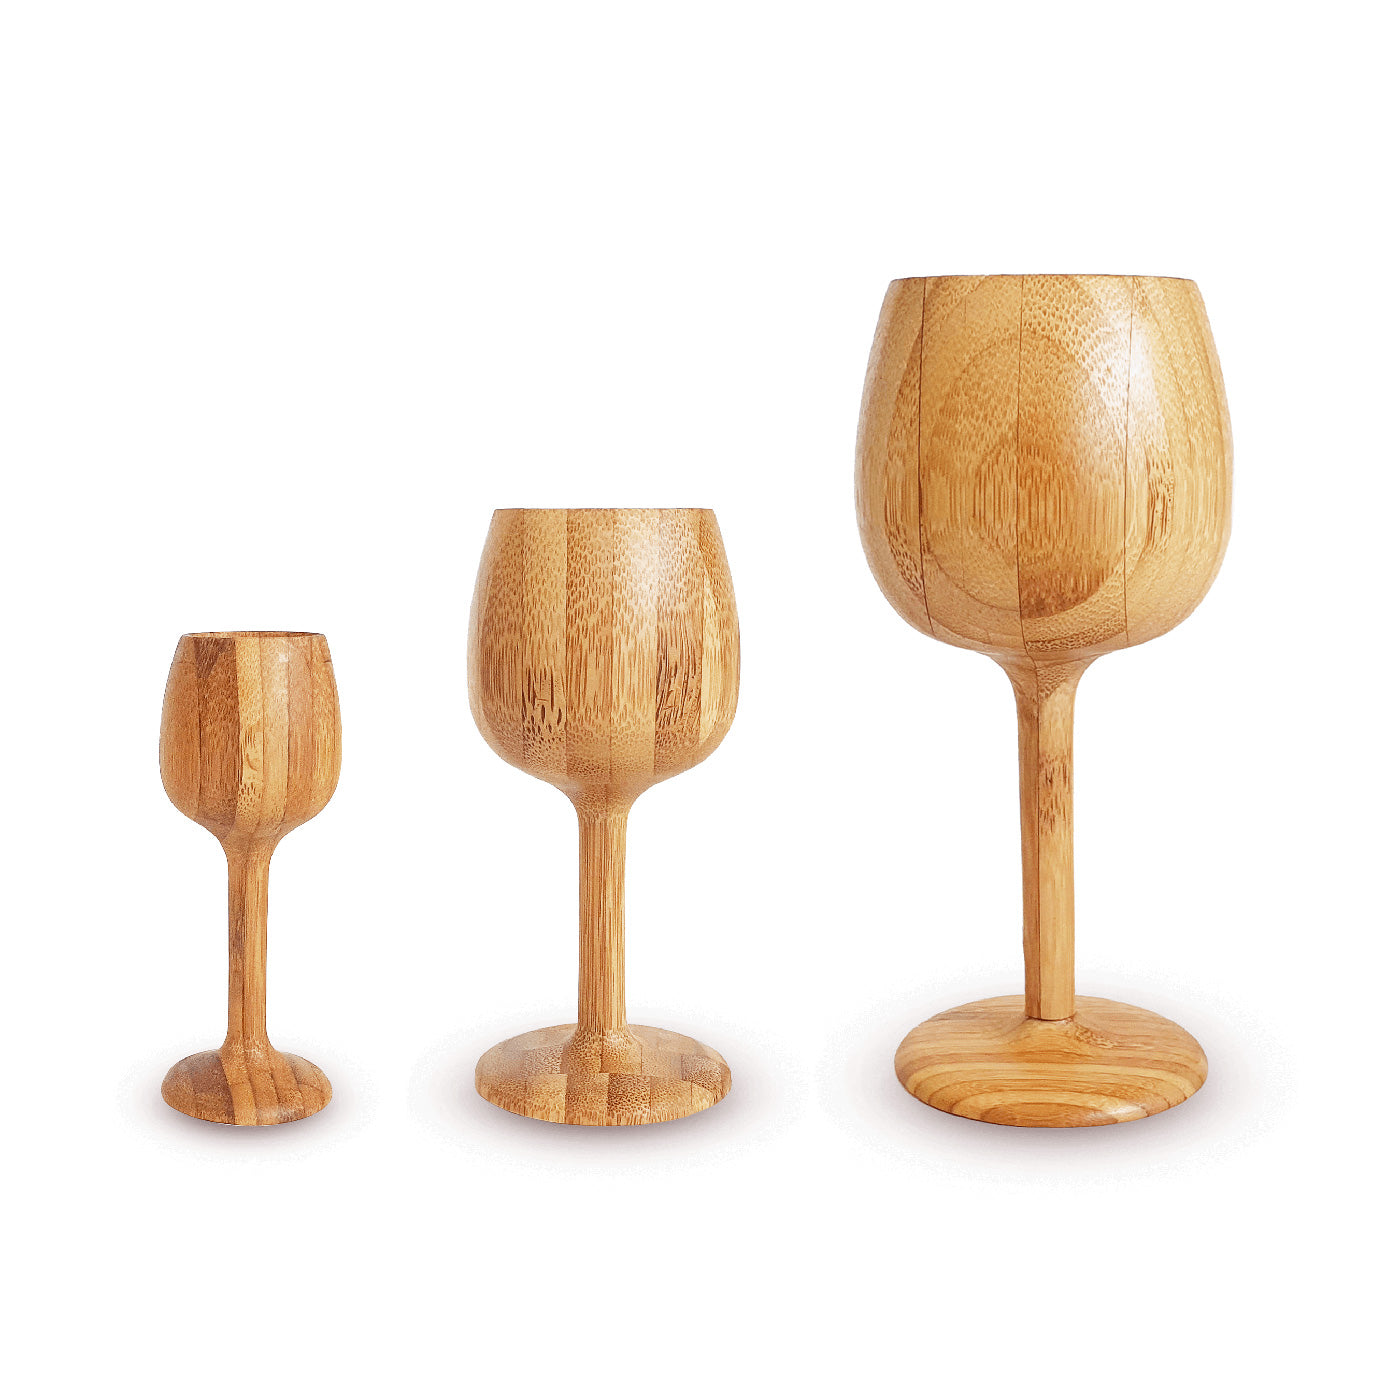 Bamboo Wine Glass Set